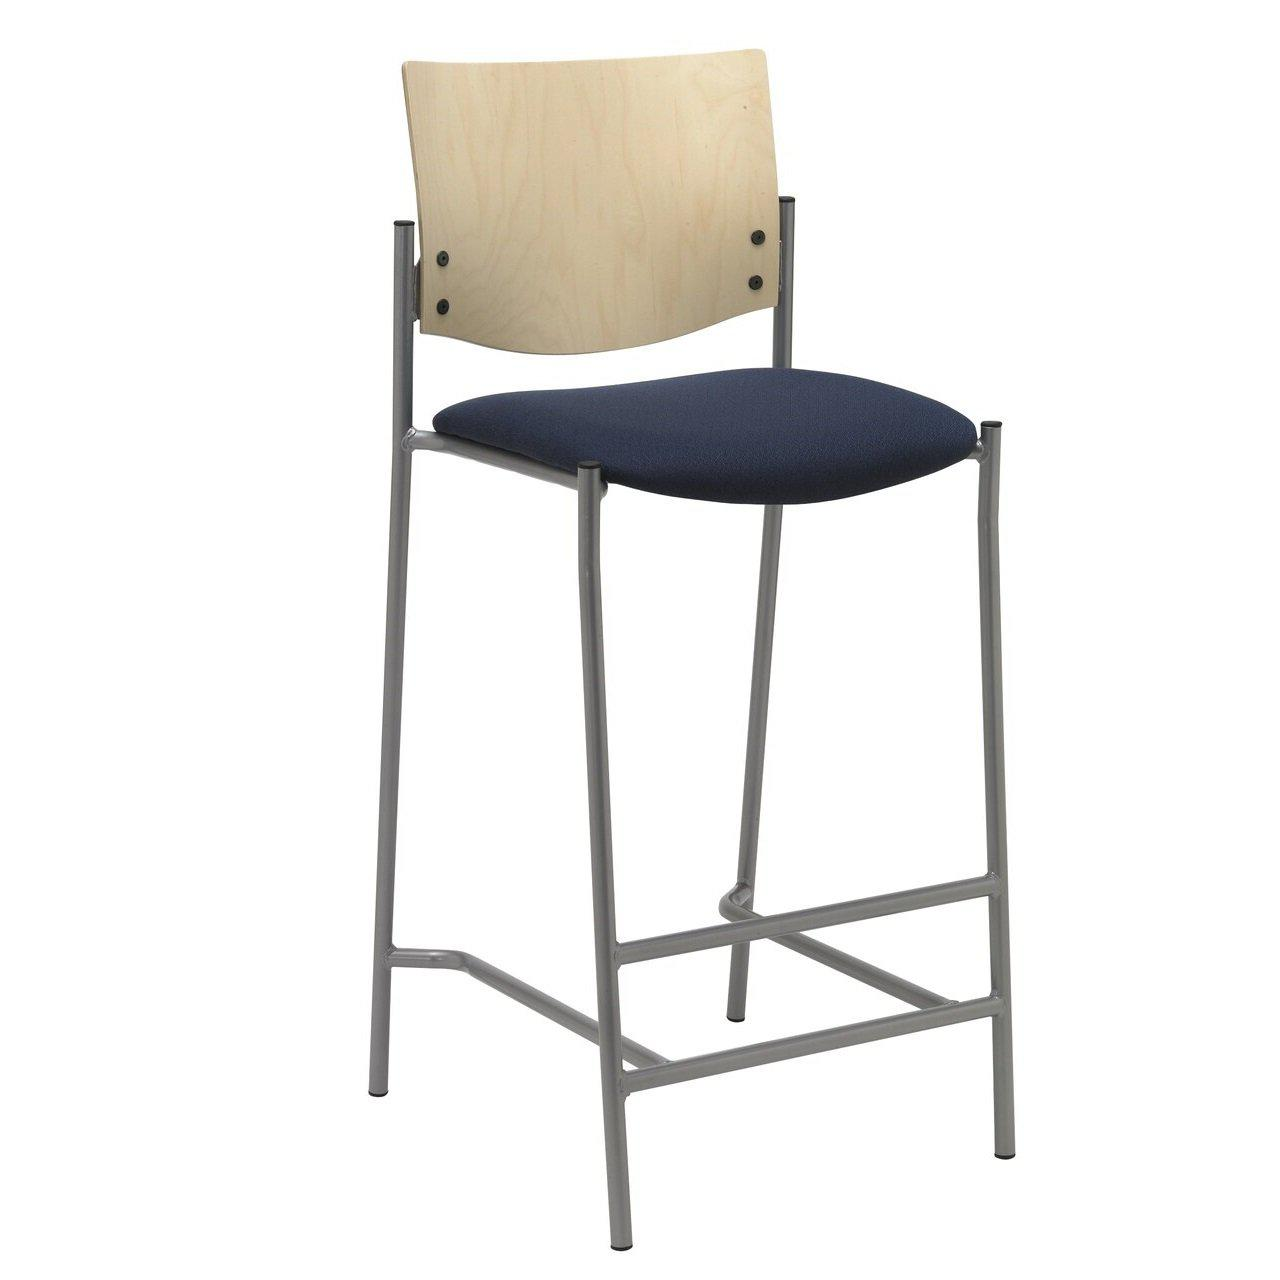 "Evolve Barstool, Wood Back, Padded Seat with Healthcare Vinyl Upholstery, 30""H"